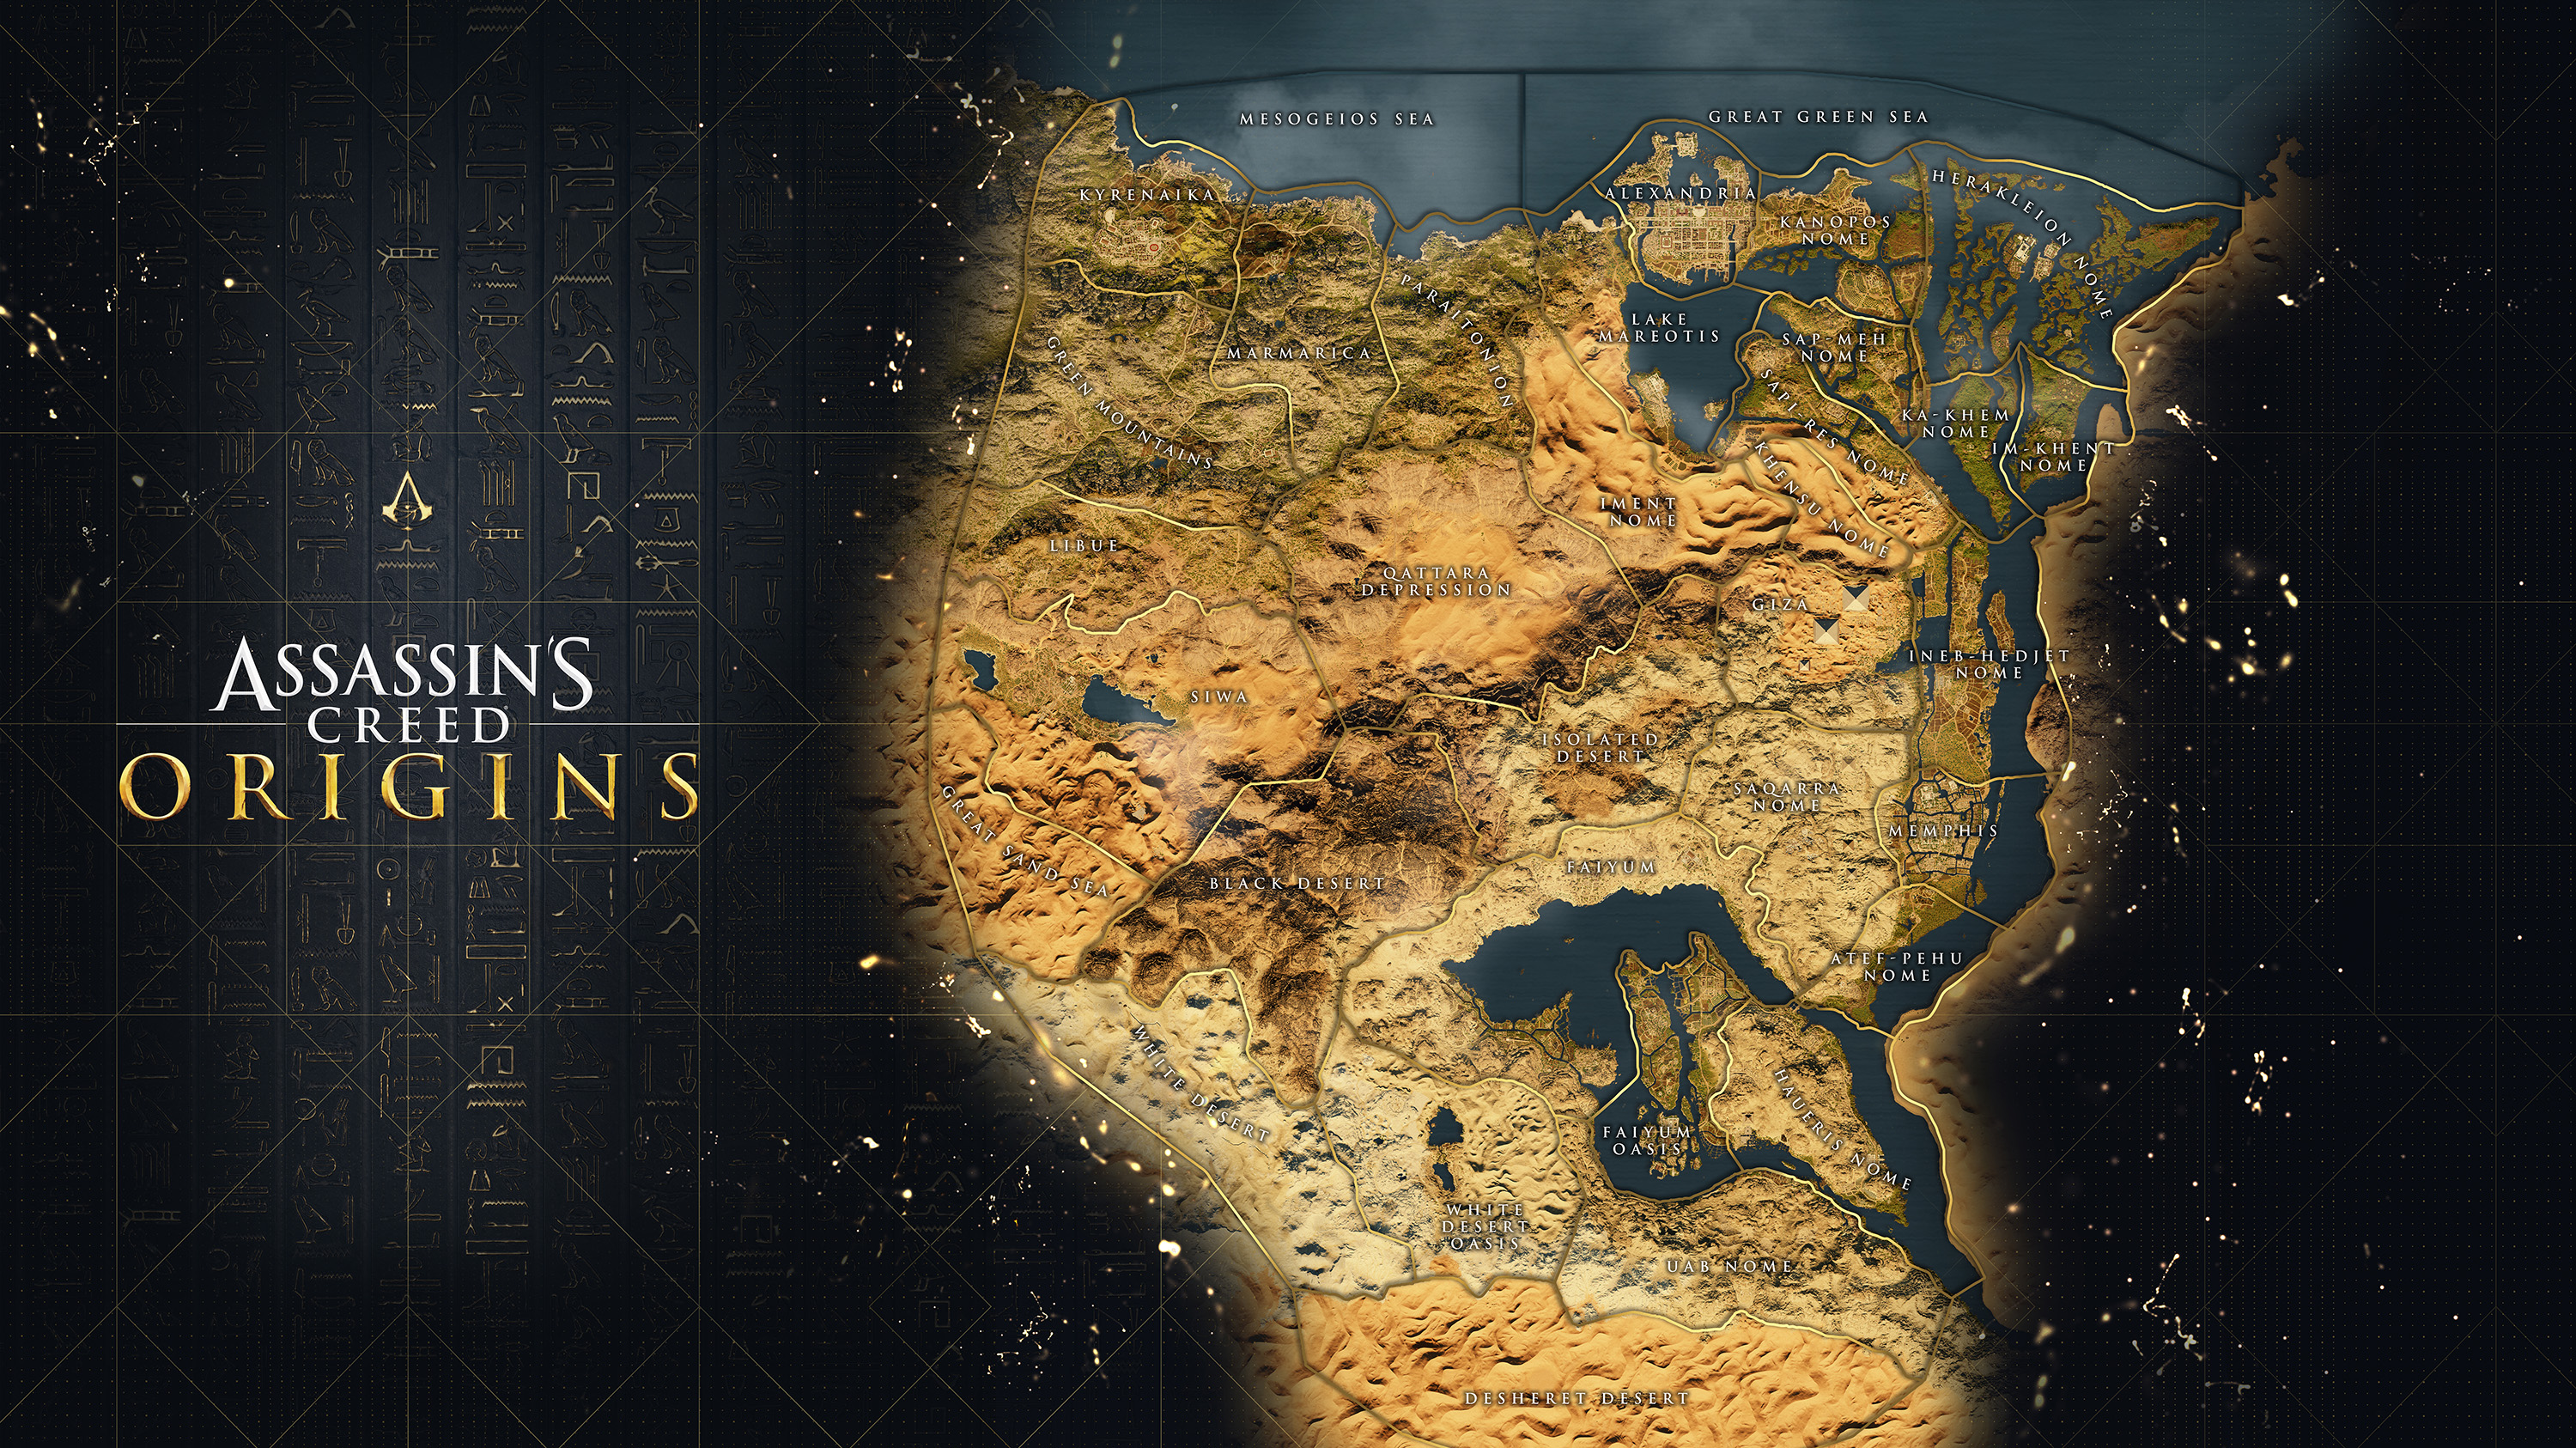 AC Origins full map - Assassin's Creed Origins, guida alternativa al gioco